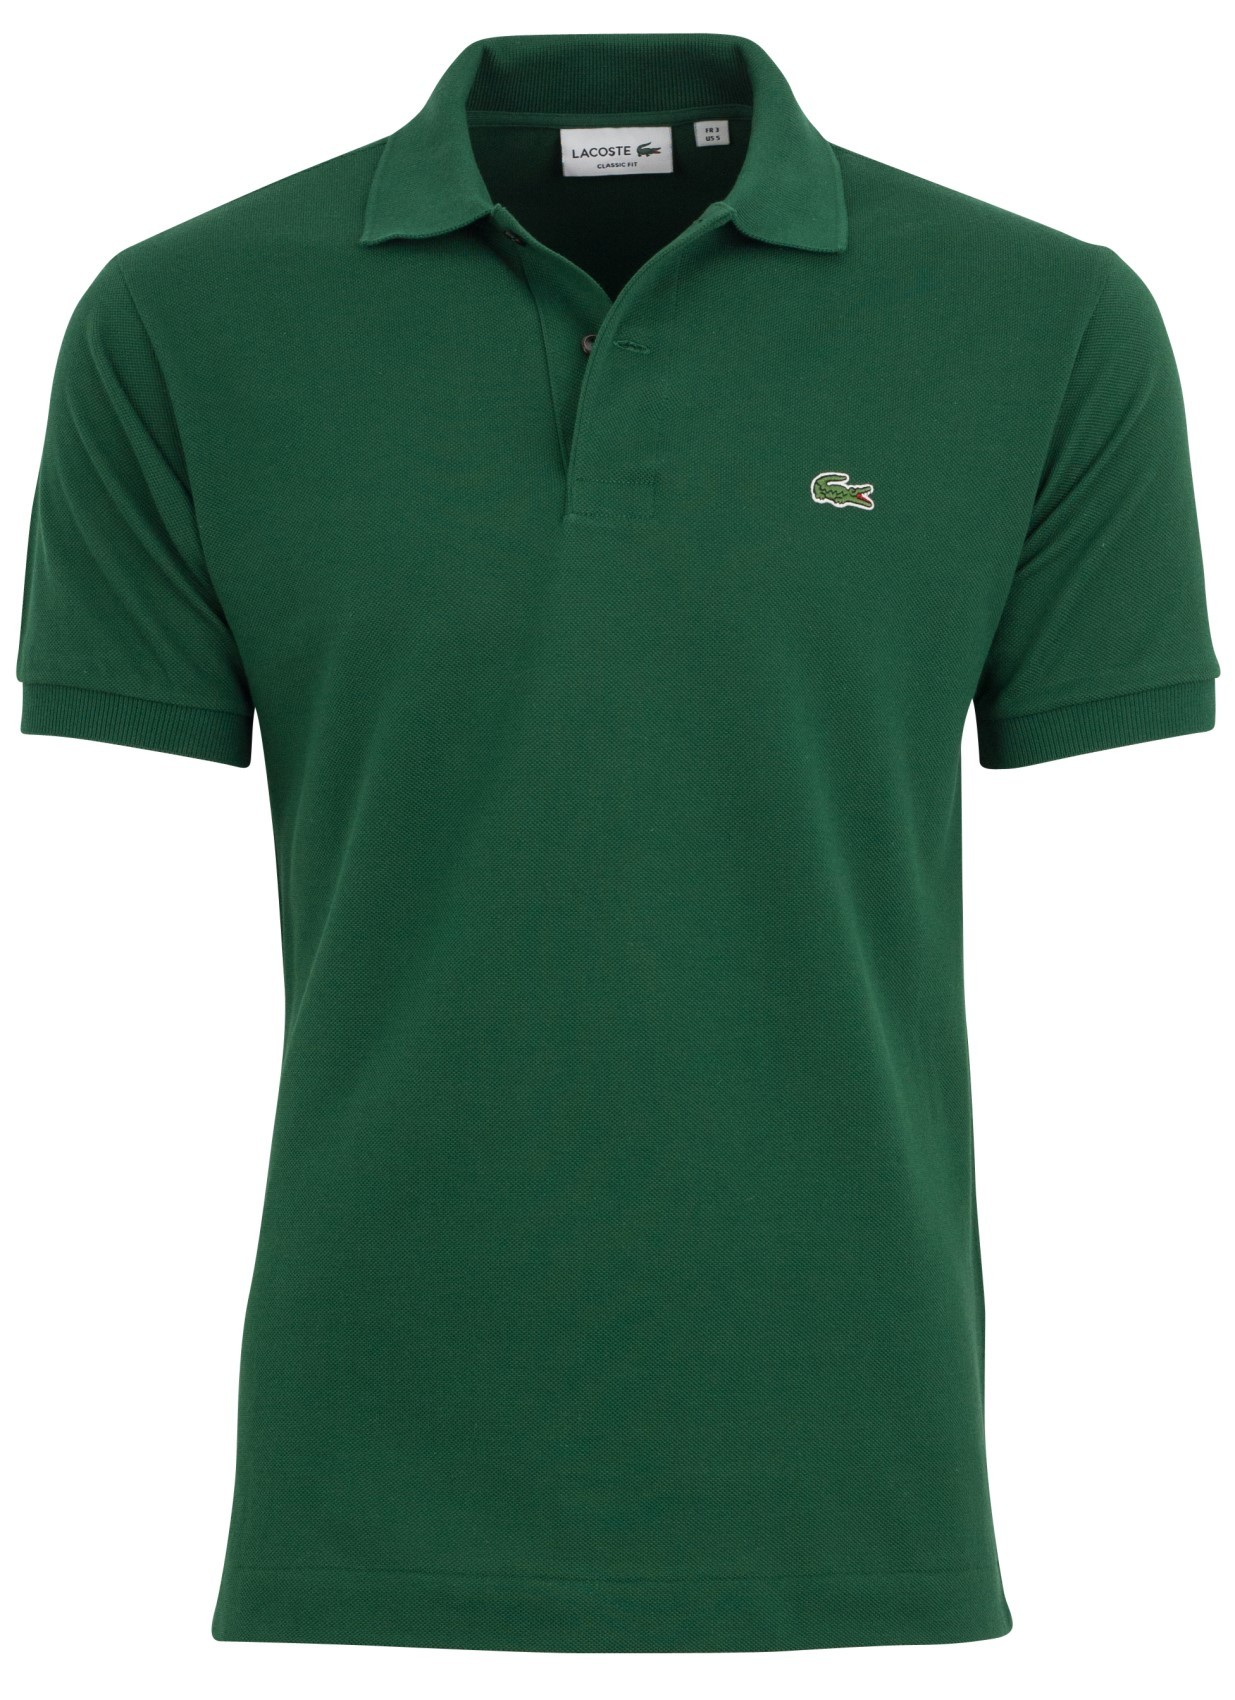 Lacoste polo classic fit donkergroen polo heren lacoste - Lacoste poloshirt weiay ...